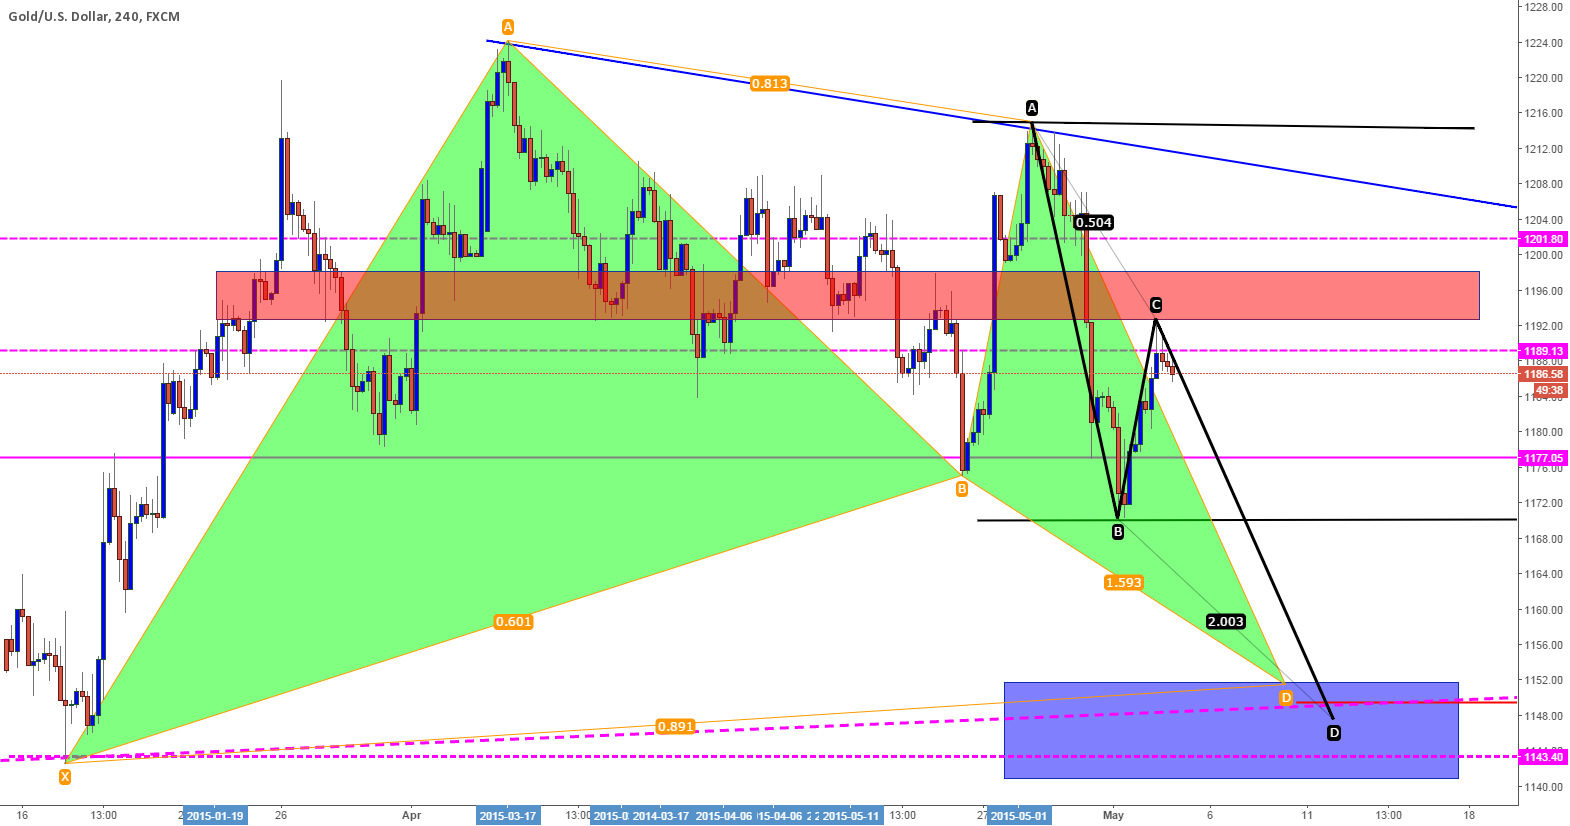 Short based on Current Price action on Gold